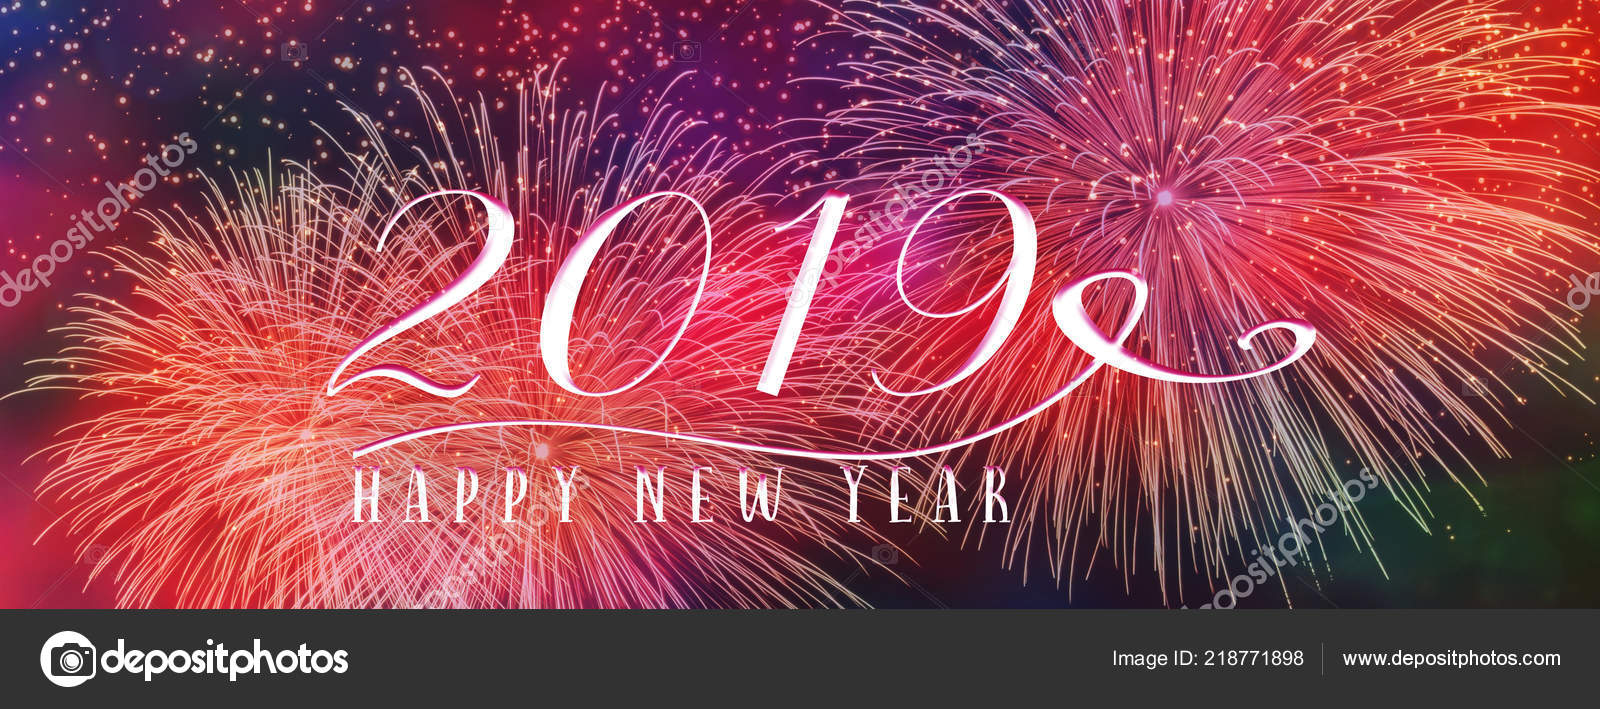 new year holiday 2019 background banner fireworks seasonal quote scales stock photo